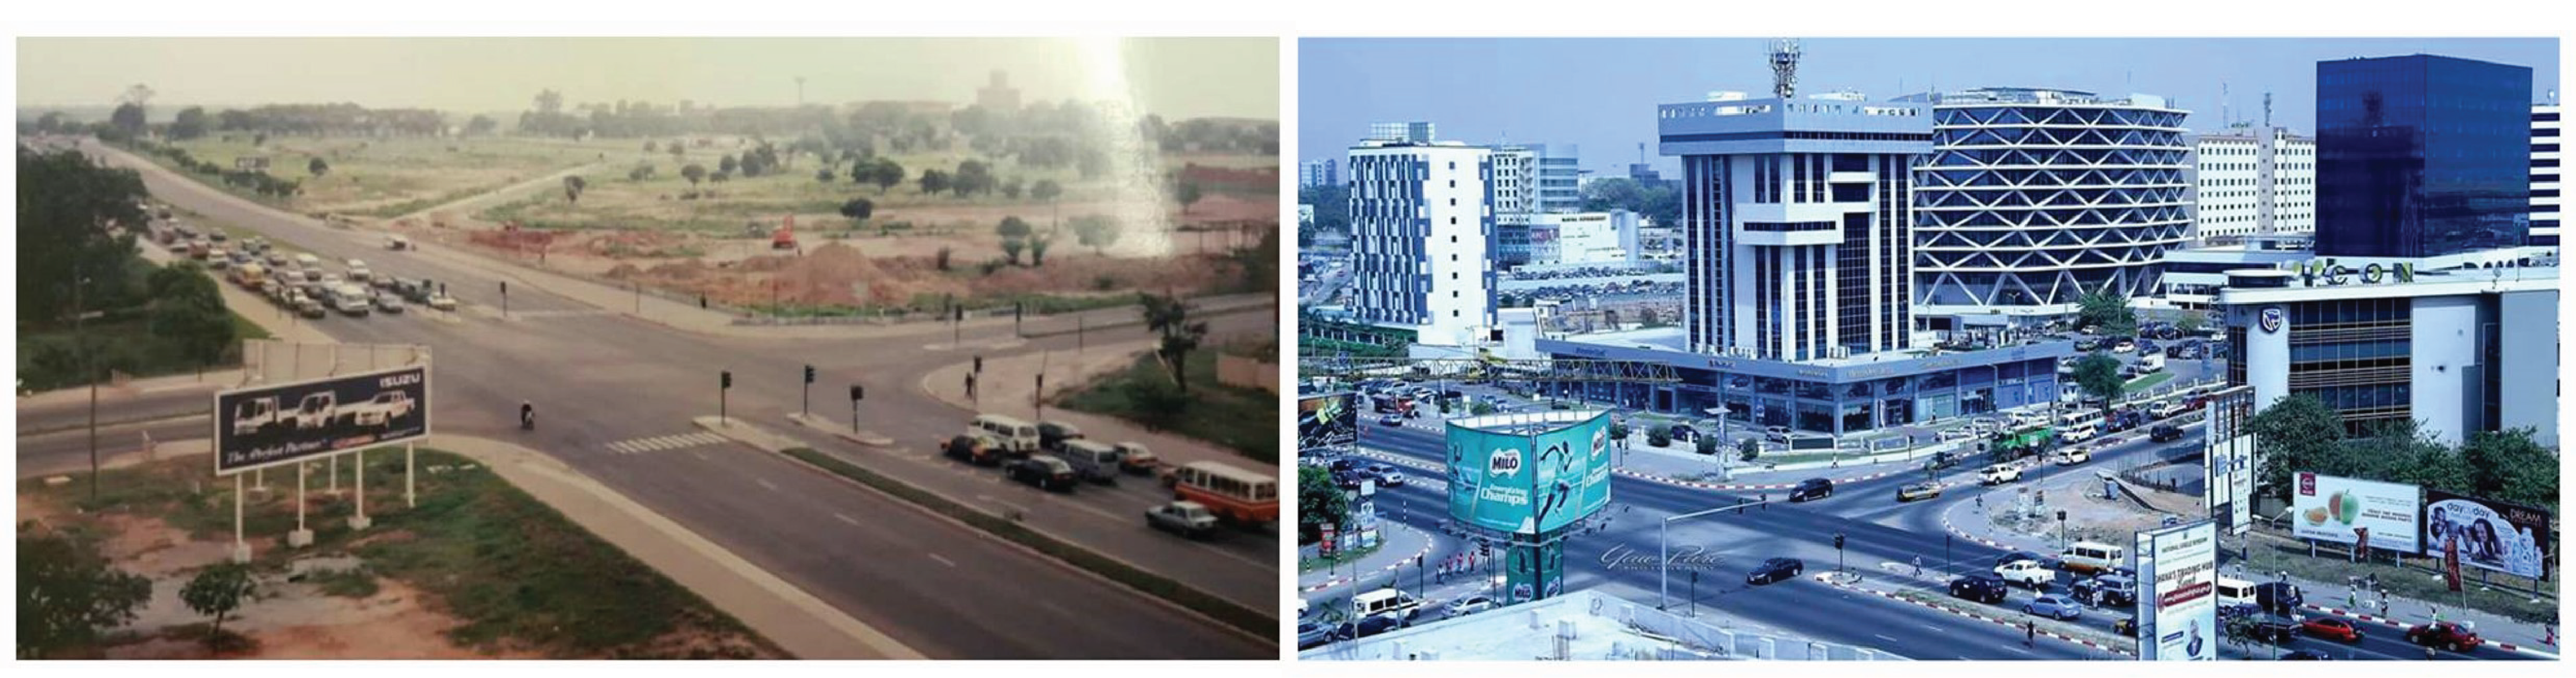 A comparison of an intersection in Accra, Ghana in 1999 versus 2009.